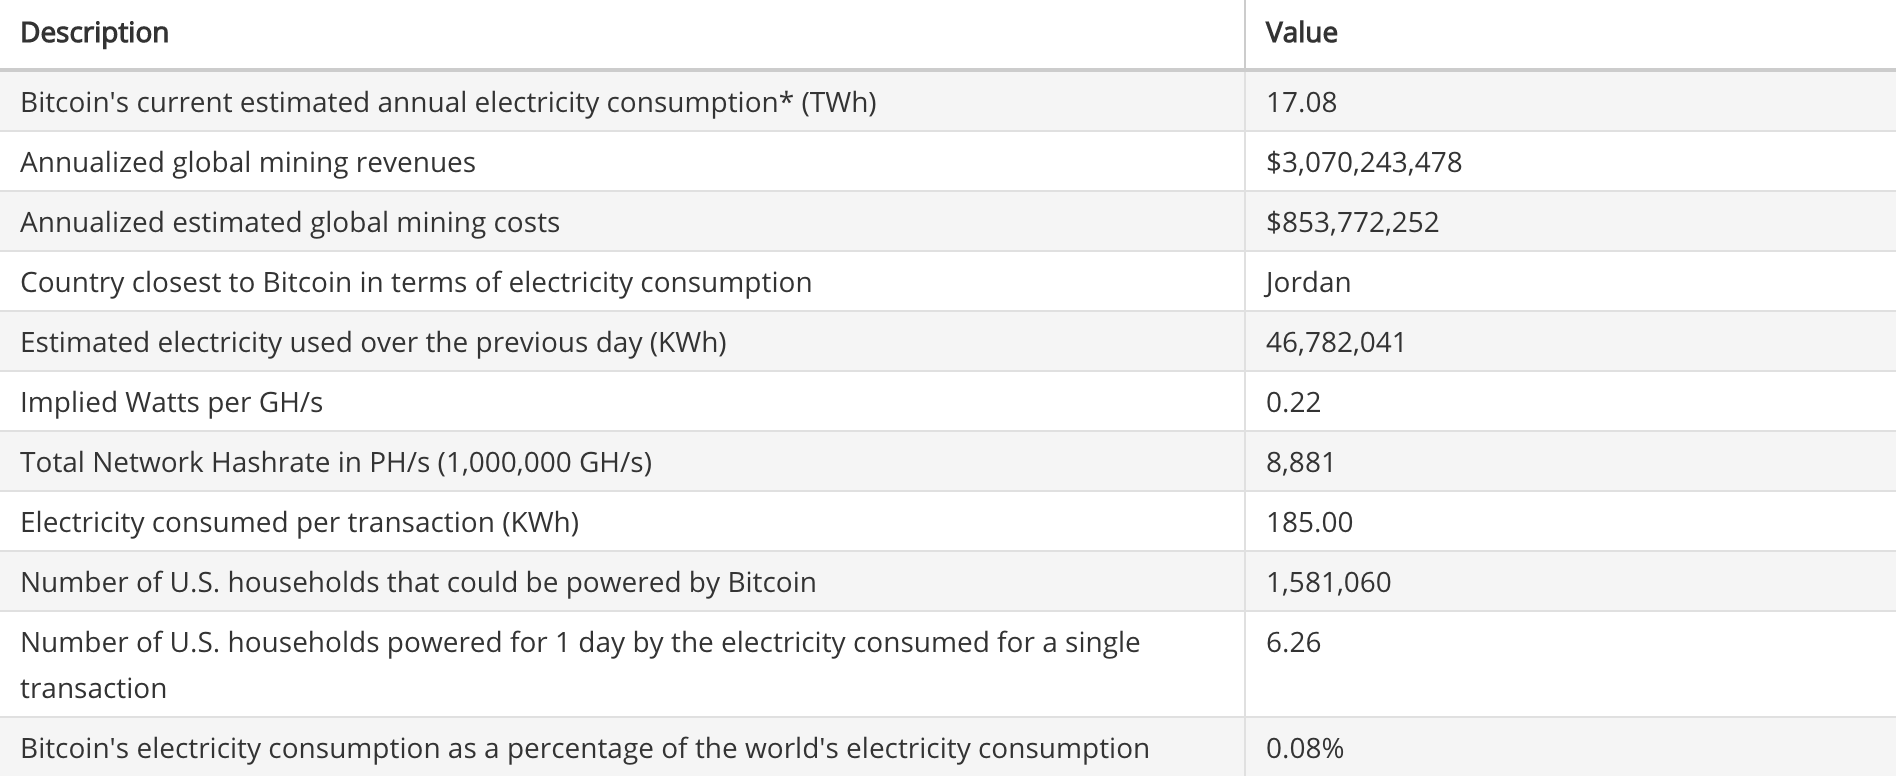 Source: https://digiconomist.net/bitcoin-energy-consumption